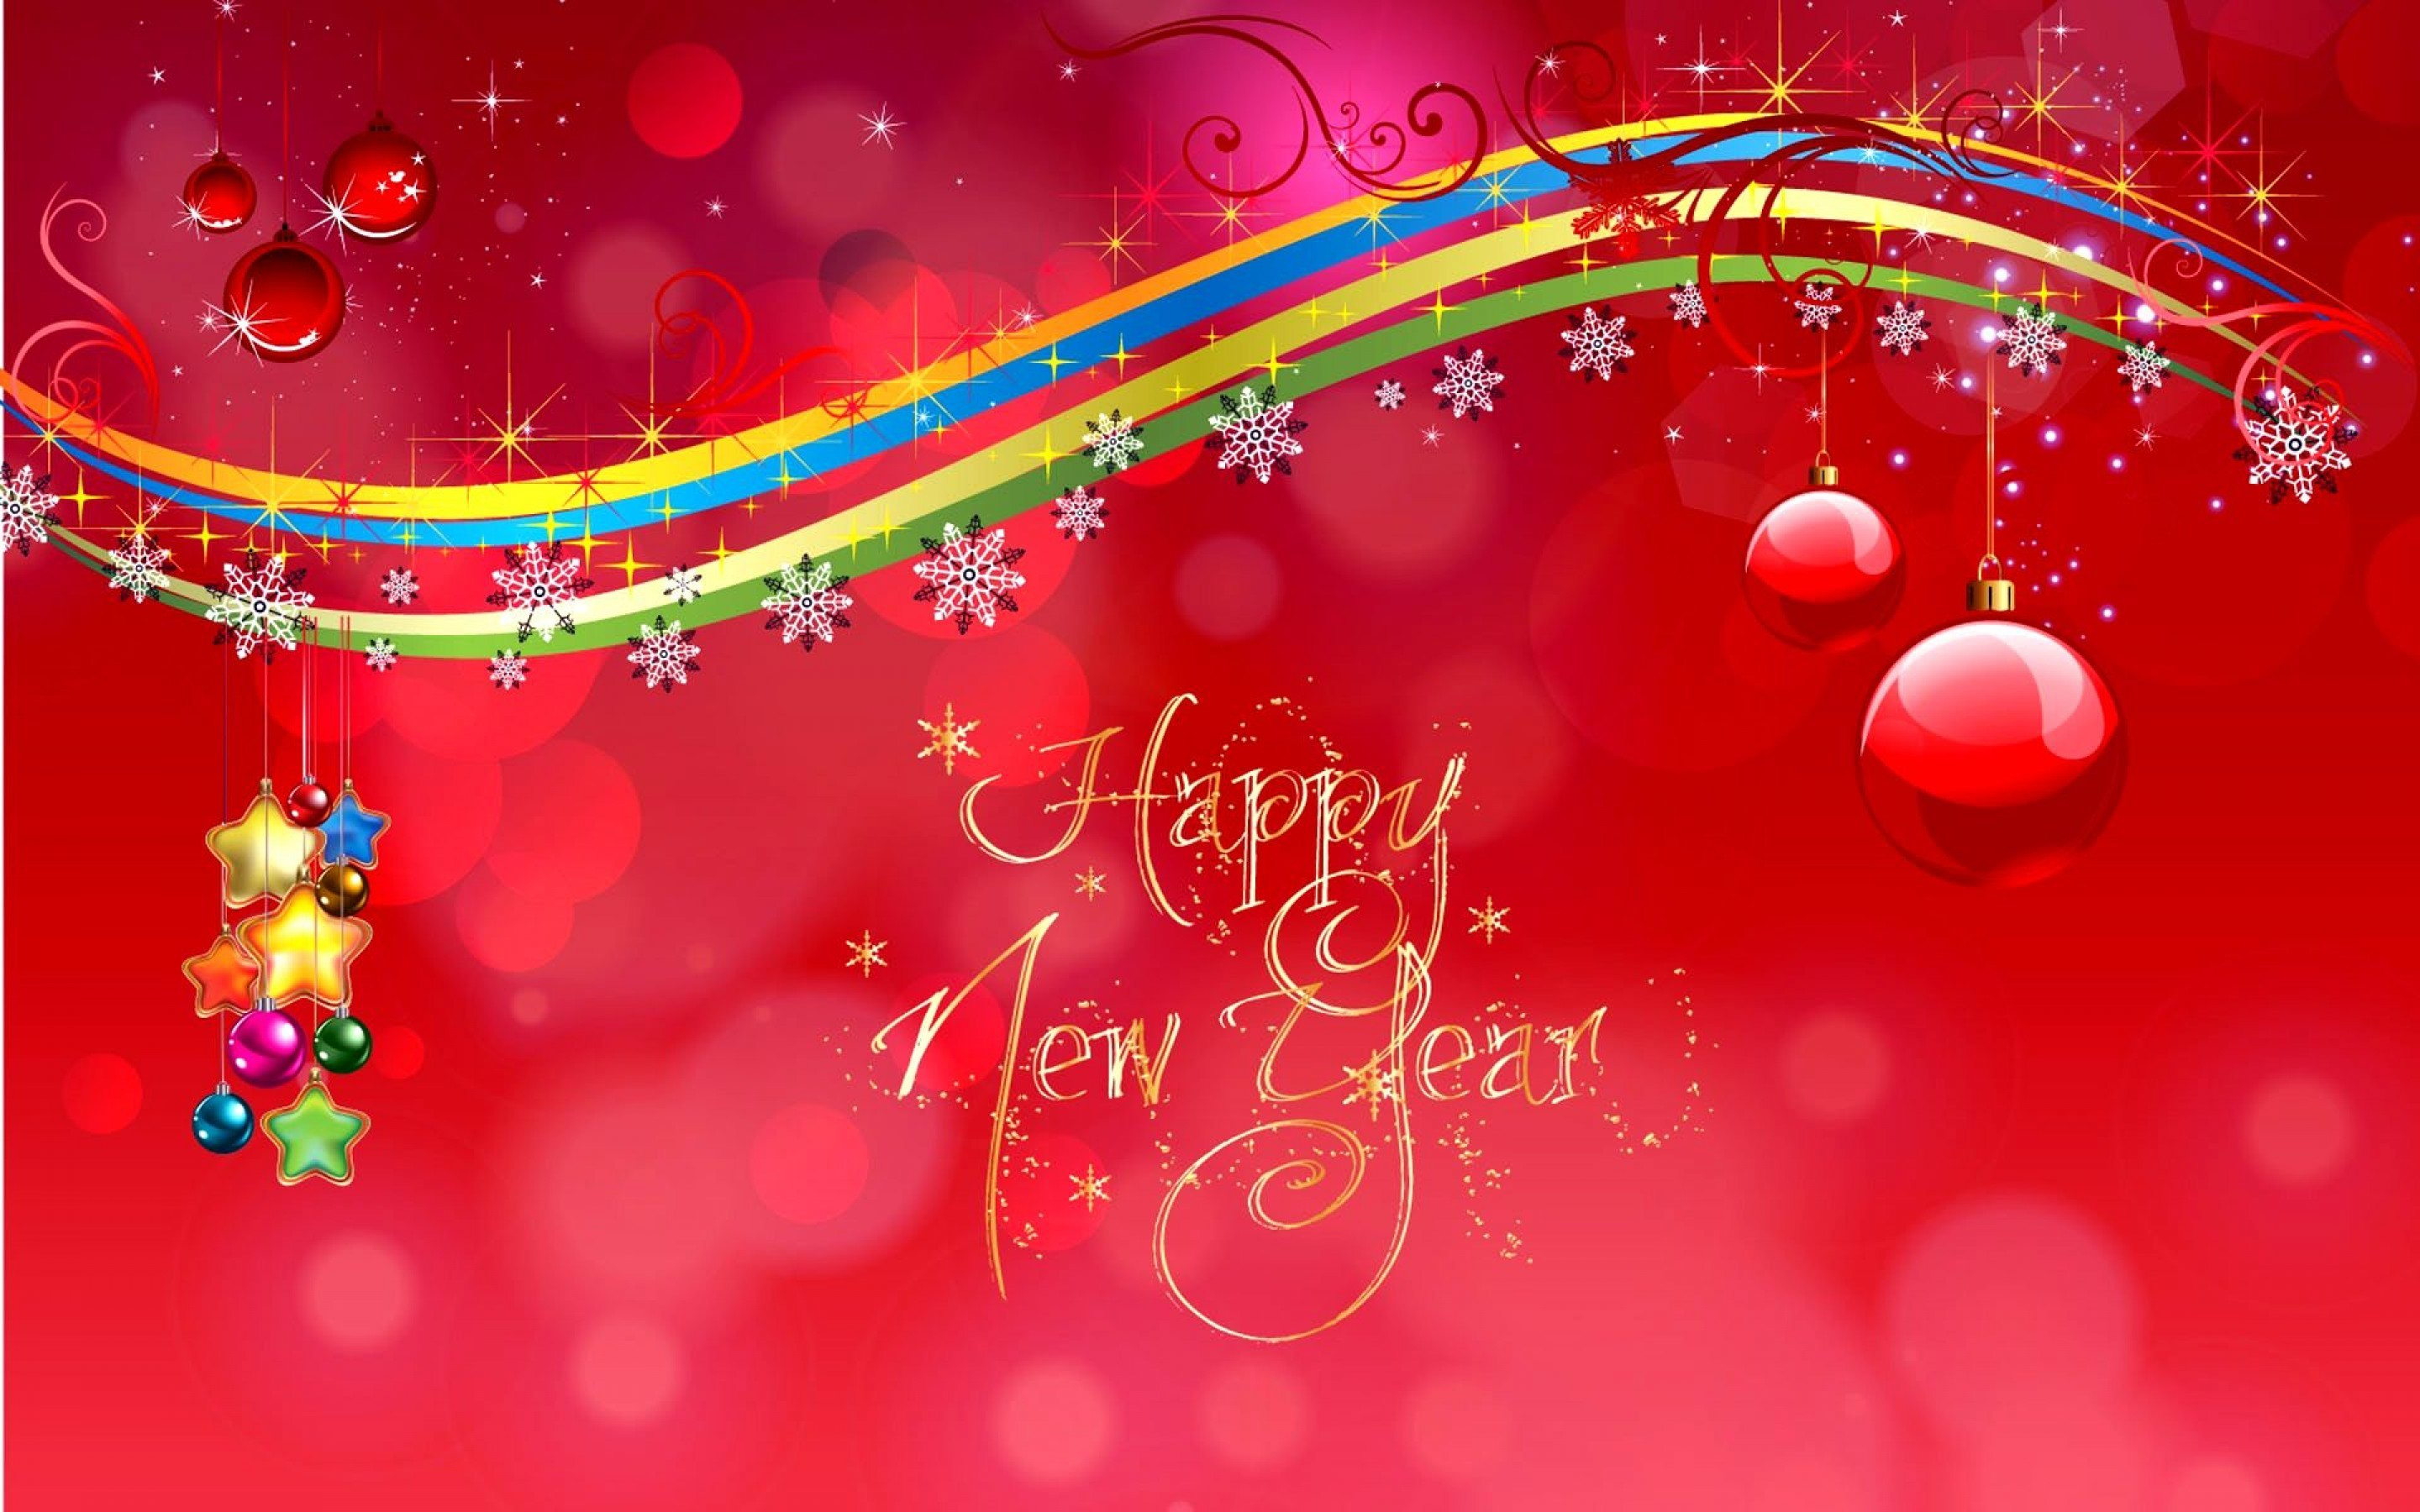 New Year Background Images (42+ images)